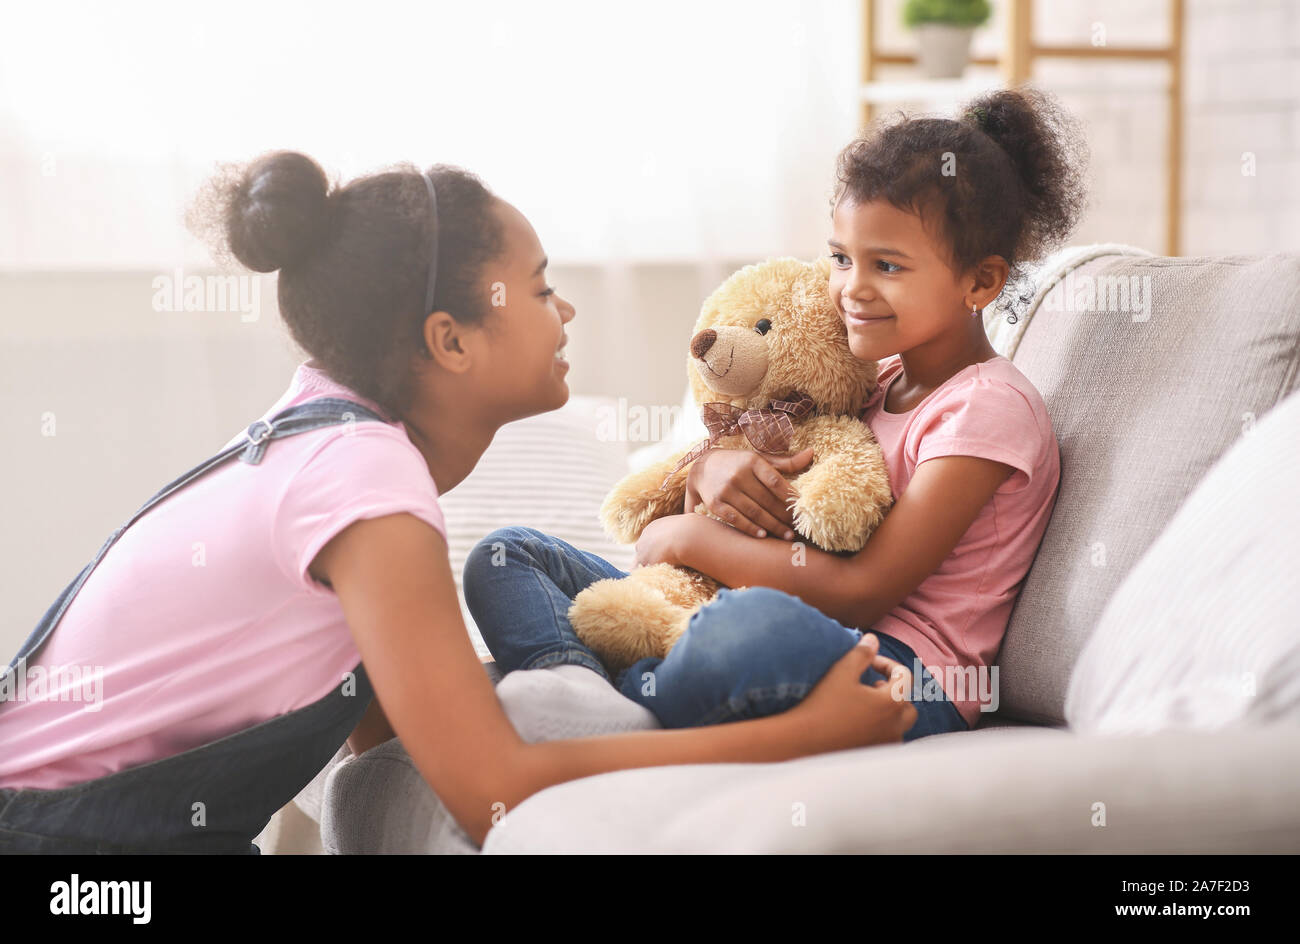 Swell Black Teen Girl Playing With Her Little Sister At Home Stock Photo Natural Hairstyles Runnerswayorg